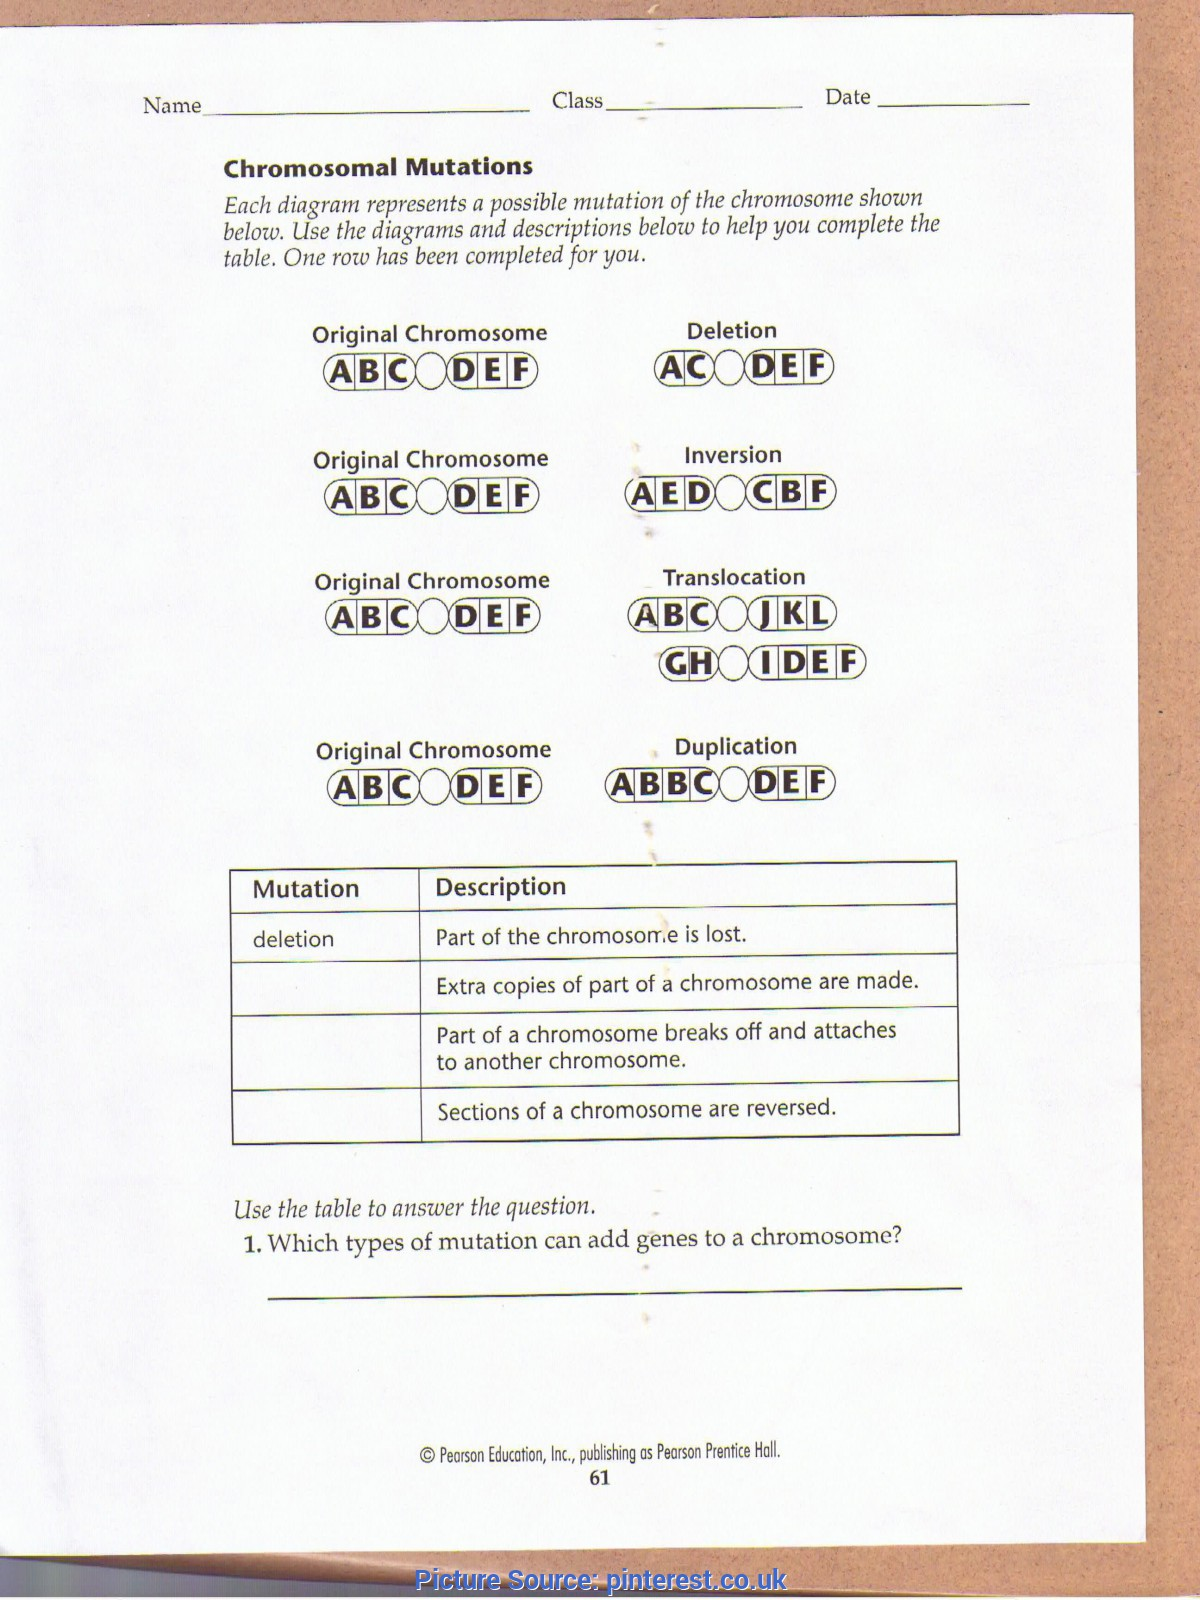 Valuable High School Biology Lesson Plans Genetics Chromosomal Mutations Worksheet | Education | Pinteres